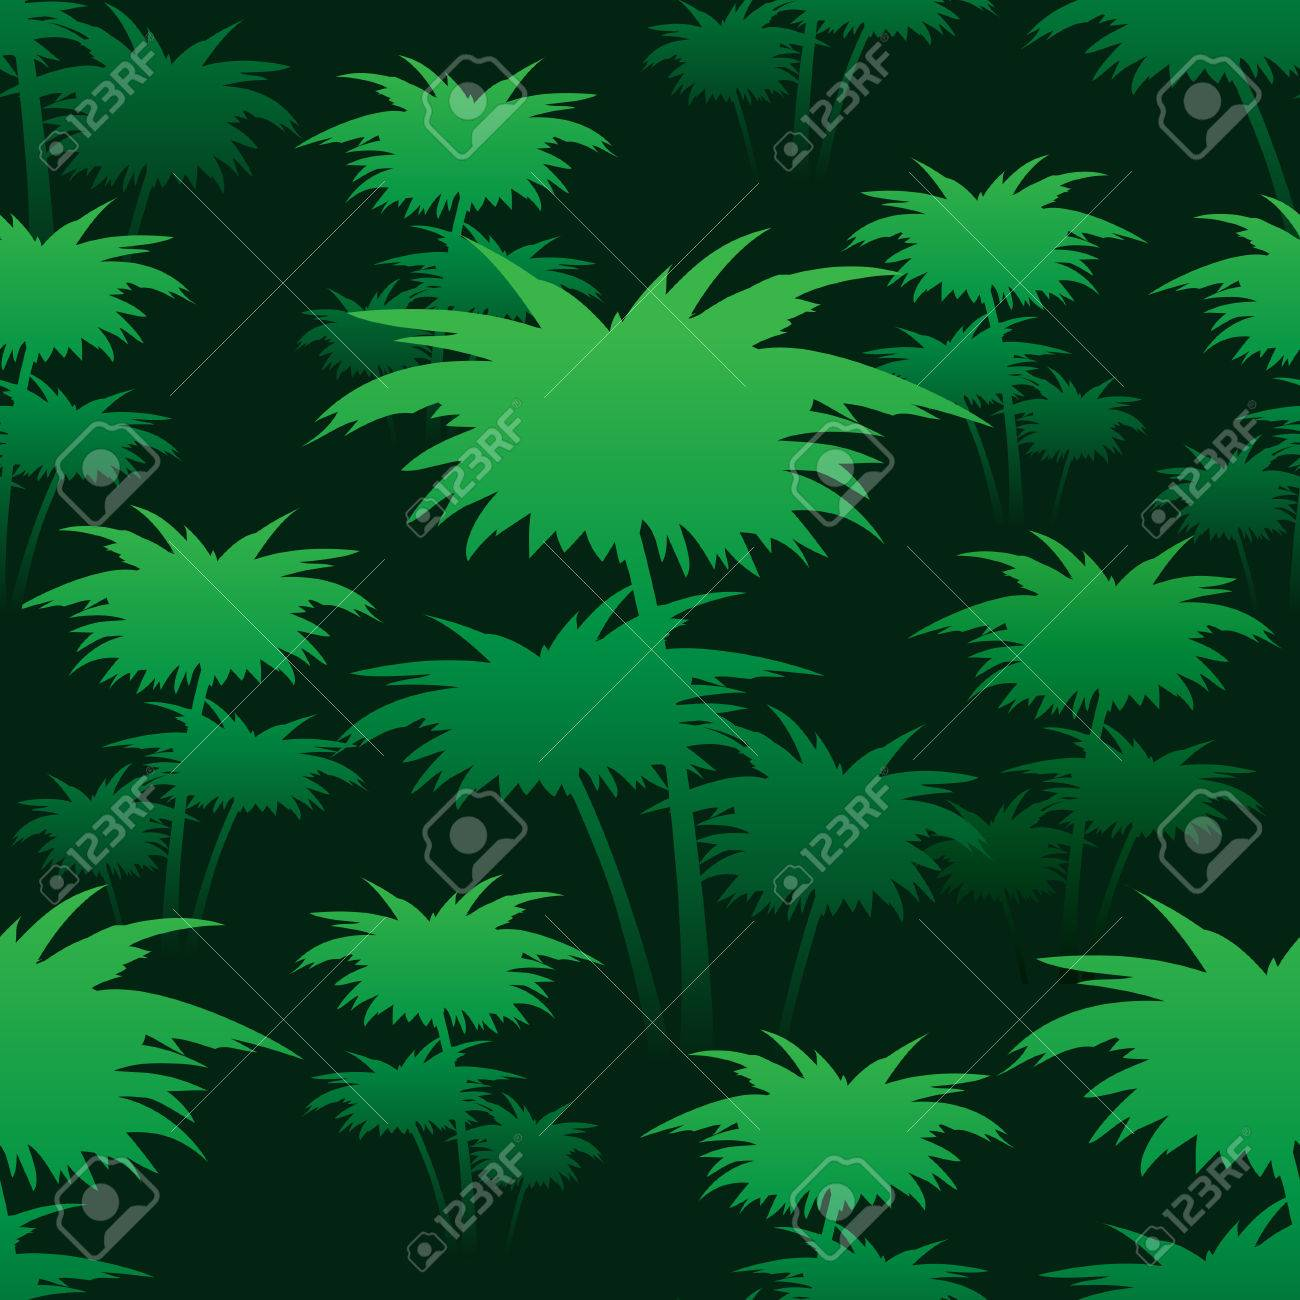 Seamless Colorful Pattern With Green Palm Trees Royalty Free ...